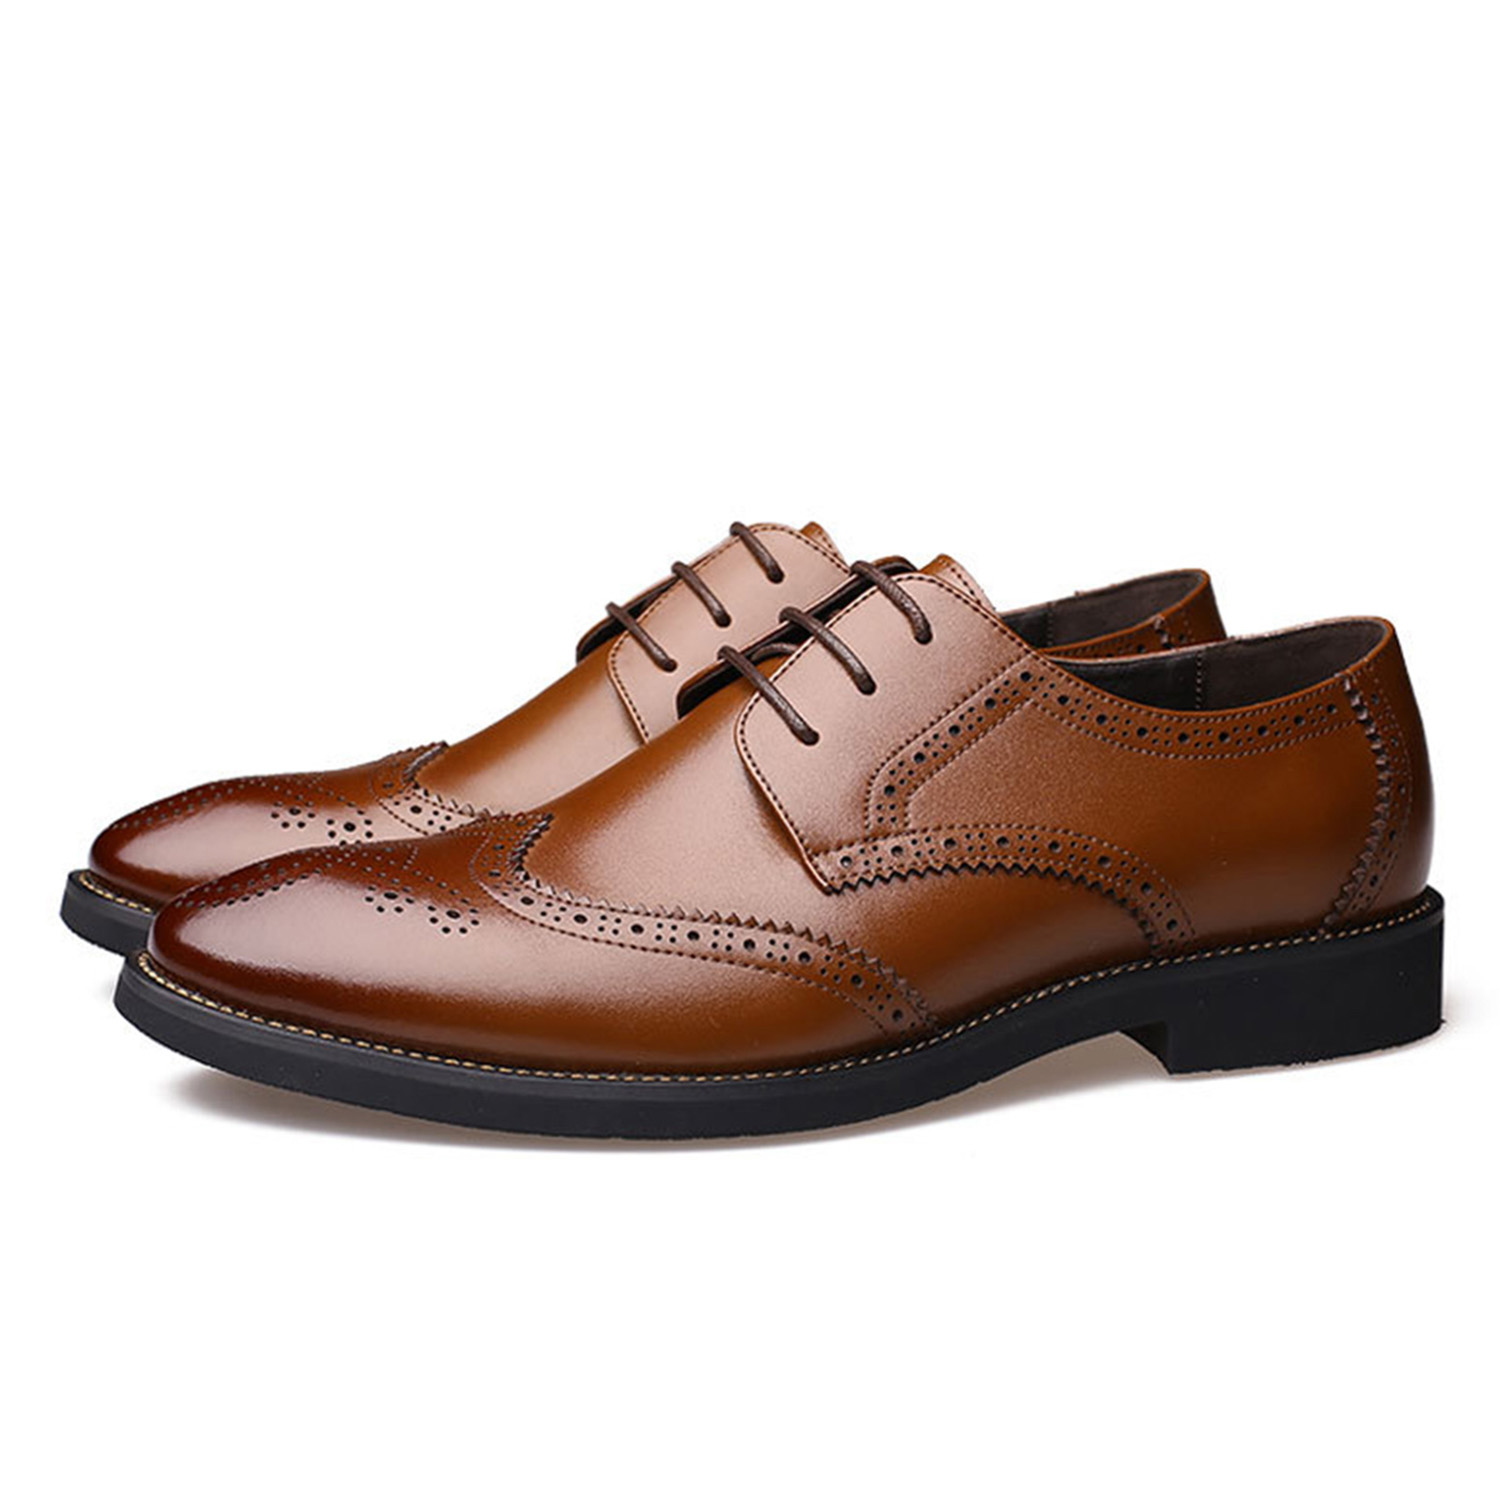 Luxury Design Oxford Business Men Shoes Genuine Leather High Quality - Men's Shoes - Photo 2